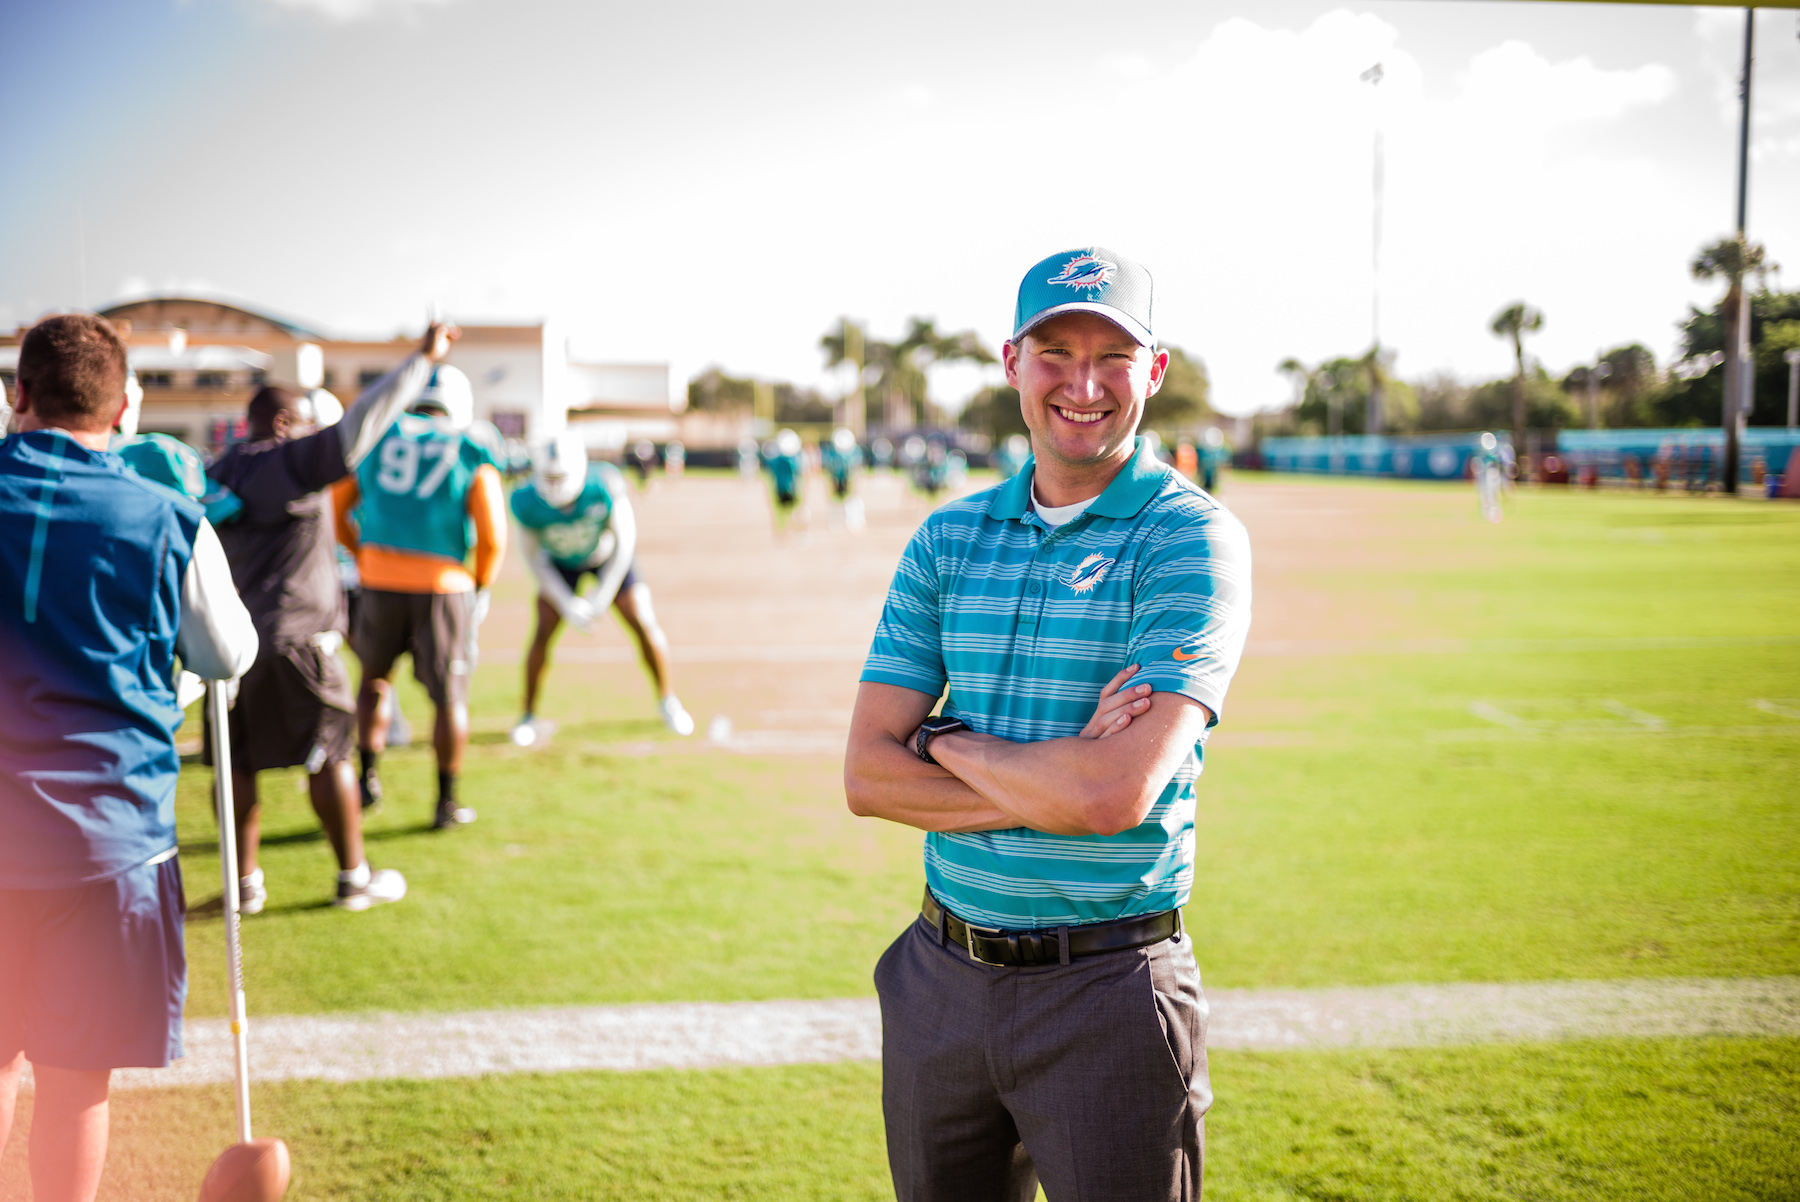 Dennis Lock stands with arms crossed on the practice field for the Miami Dolphins. Dolphins players are in the background doing practice drills.